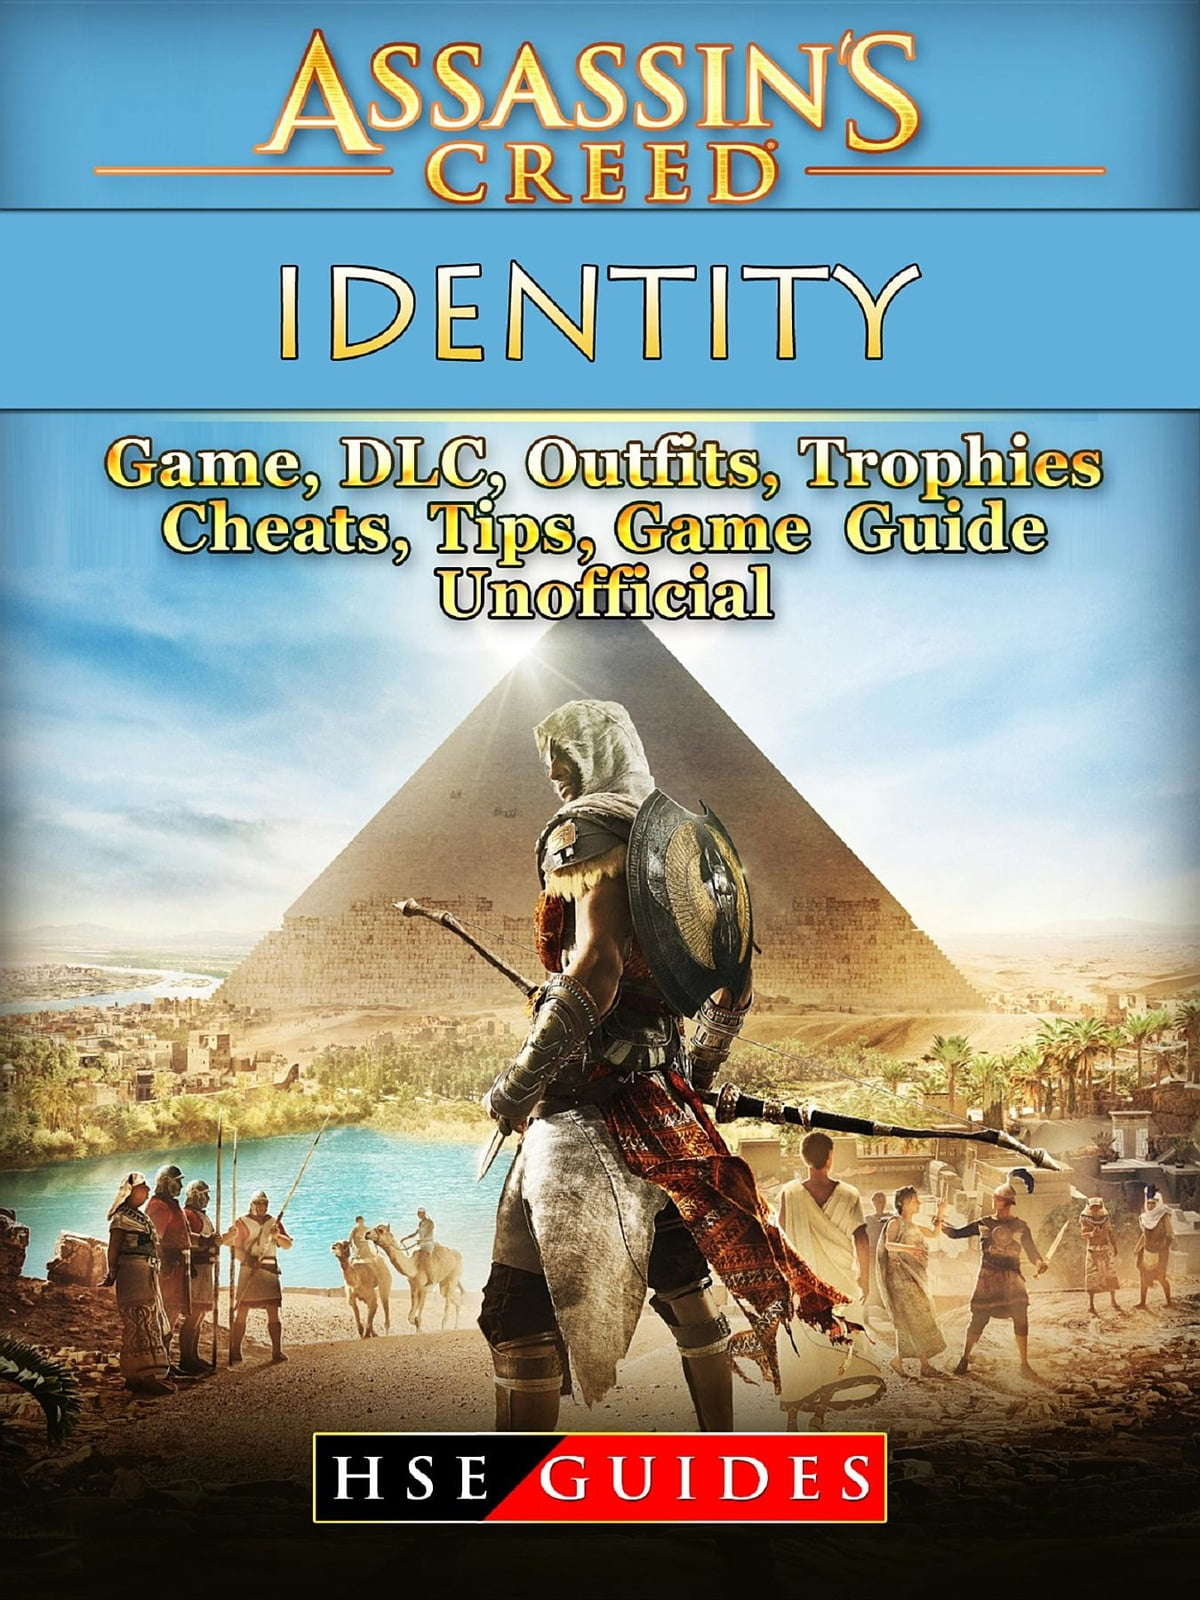 Assassins Creed Identity Game, DLC, Outfits, Trophies, Cheats, Tips, Game  Guide Unofficial ebook by HSE Guides - Rakuten Kobo